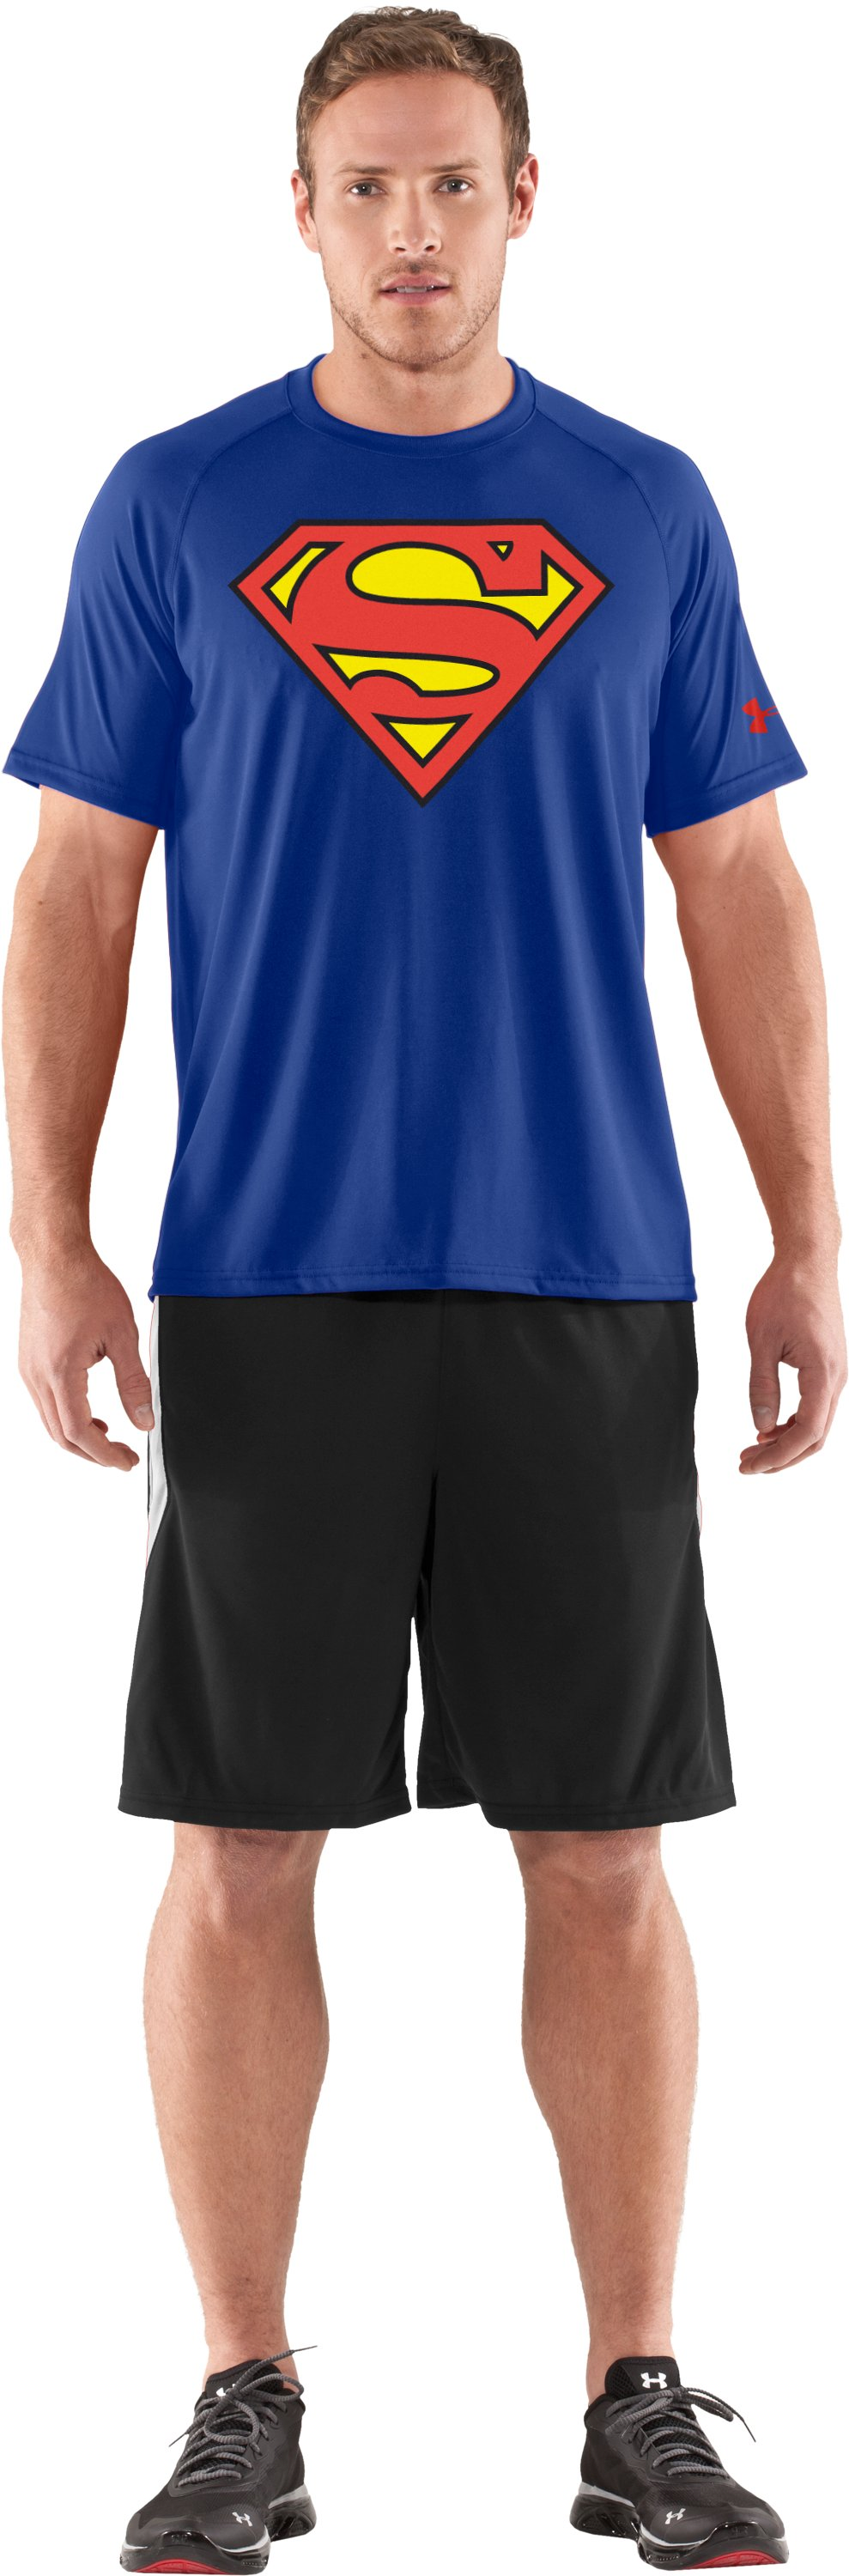 Men's Under Armour® Alter Ego Superman T-Shirt, Royal, Front